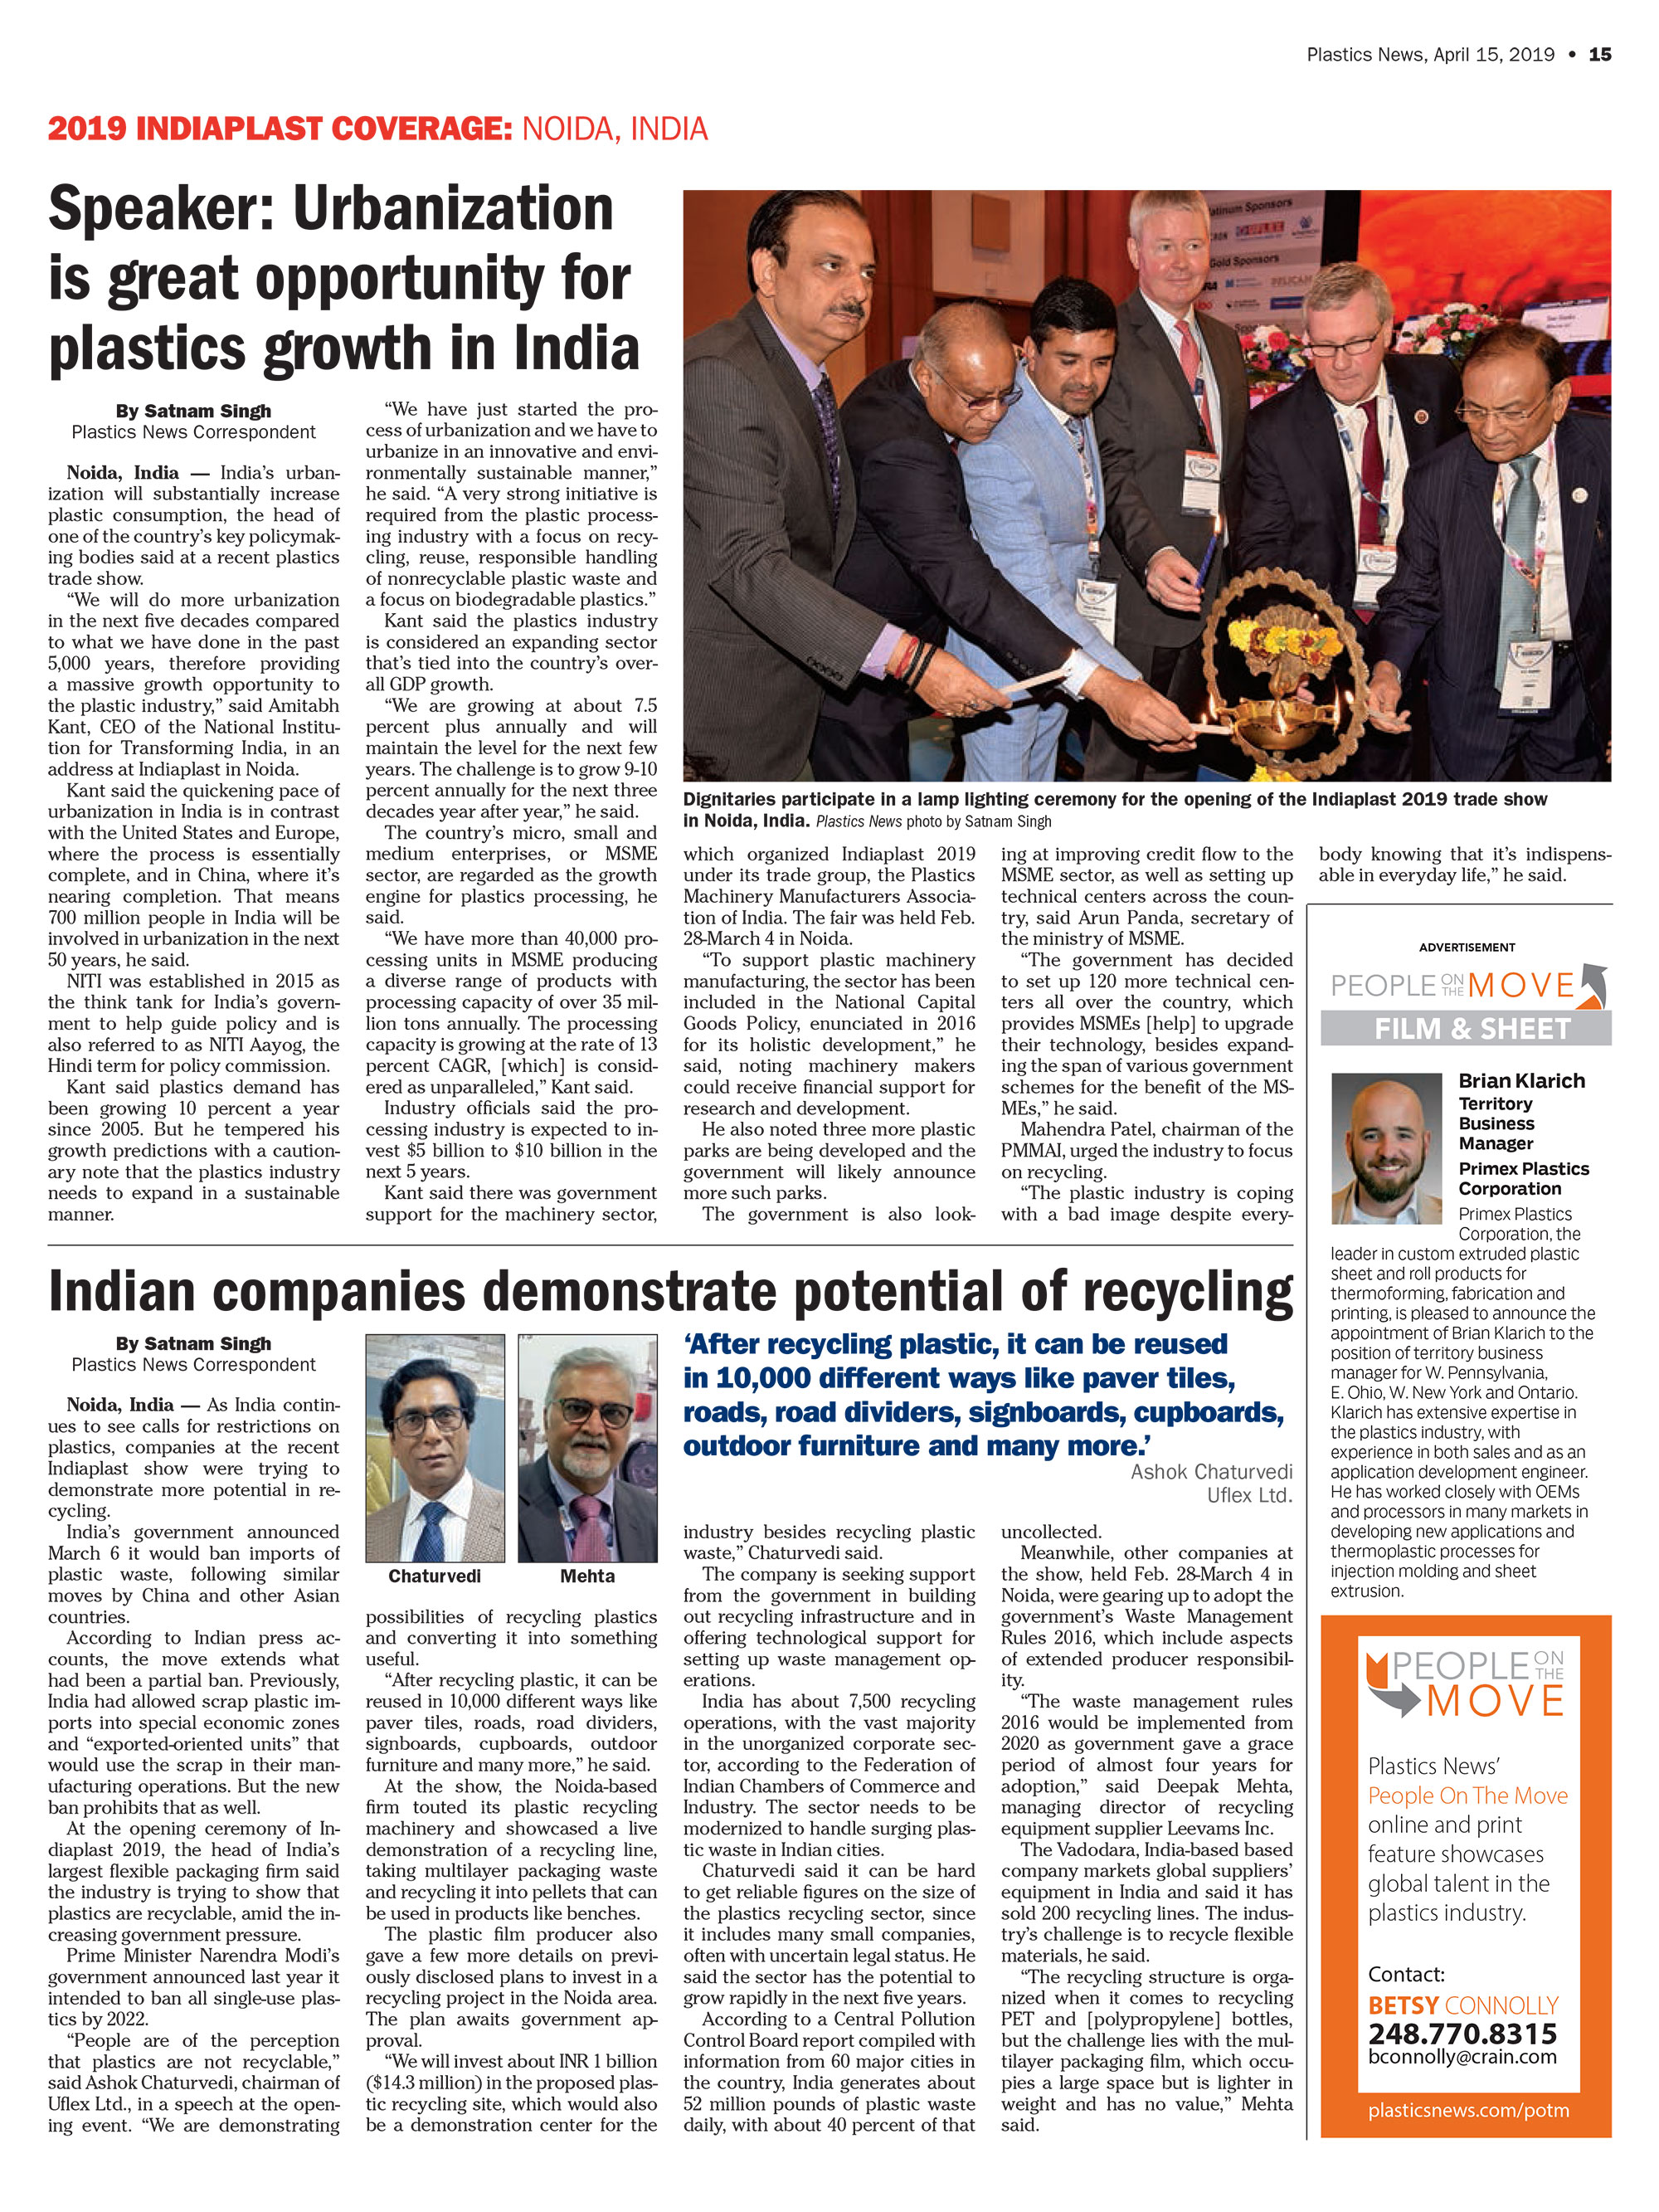 April-15-2019-PN-Issue-PG15